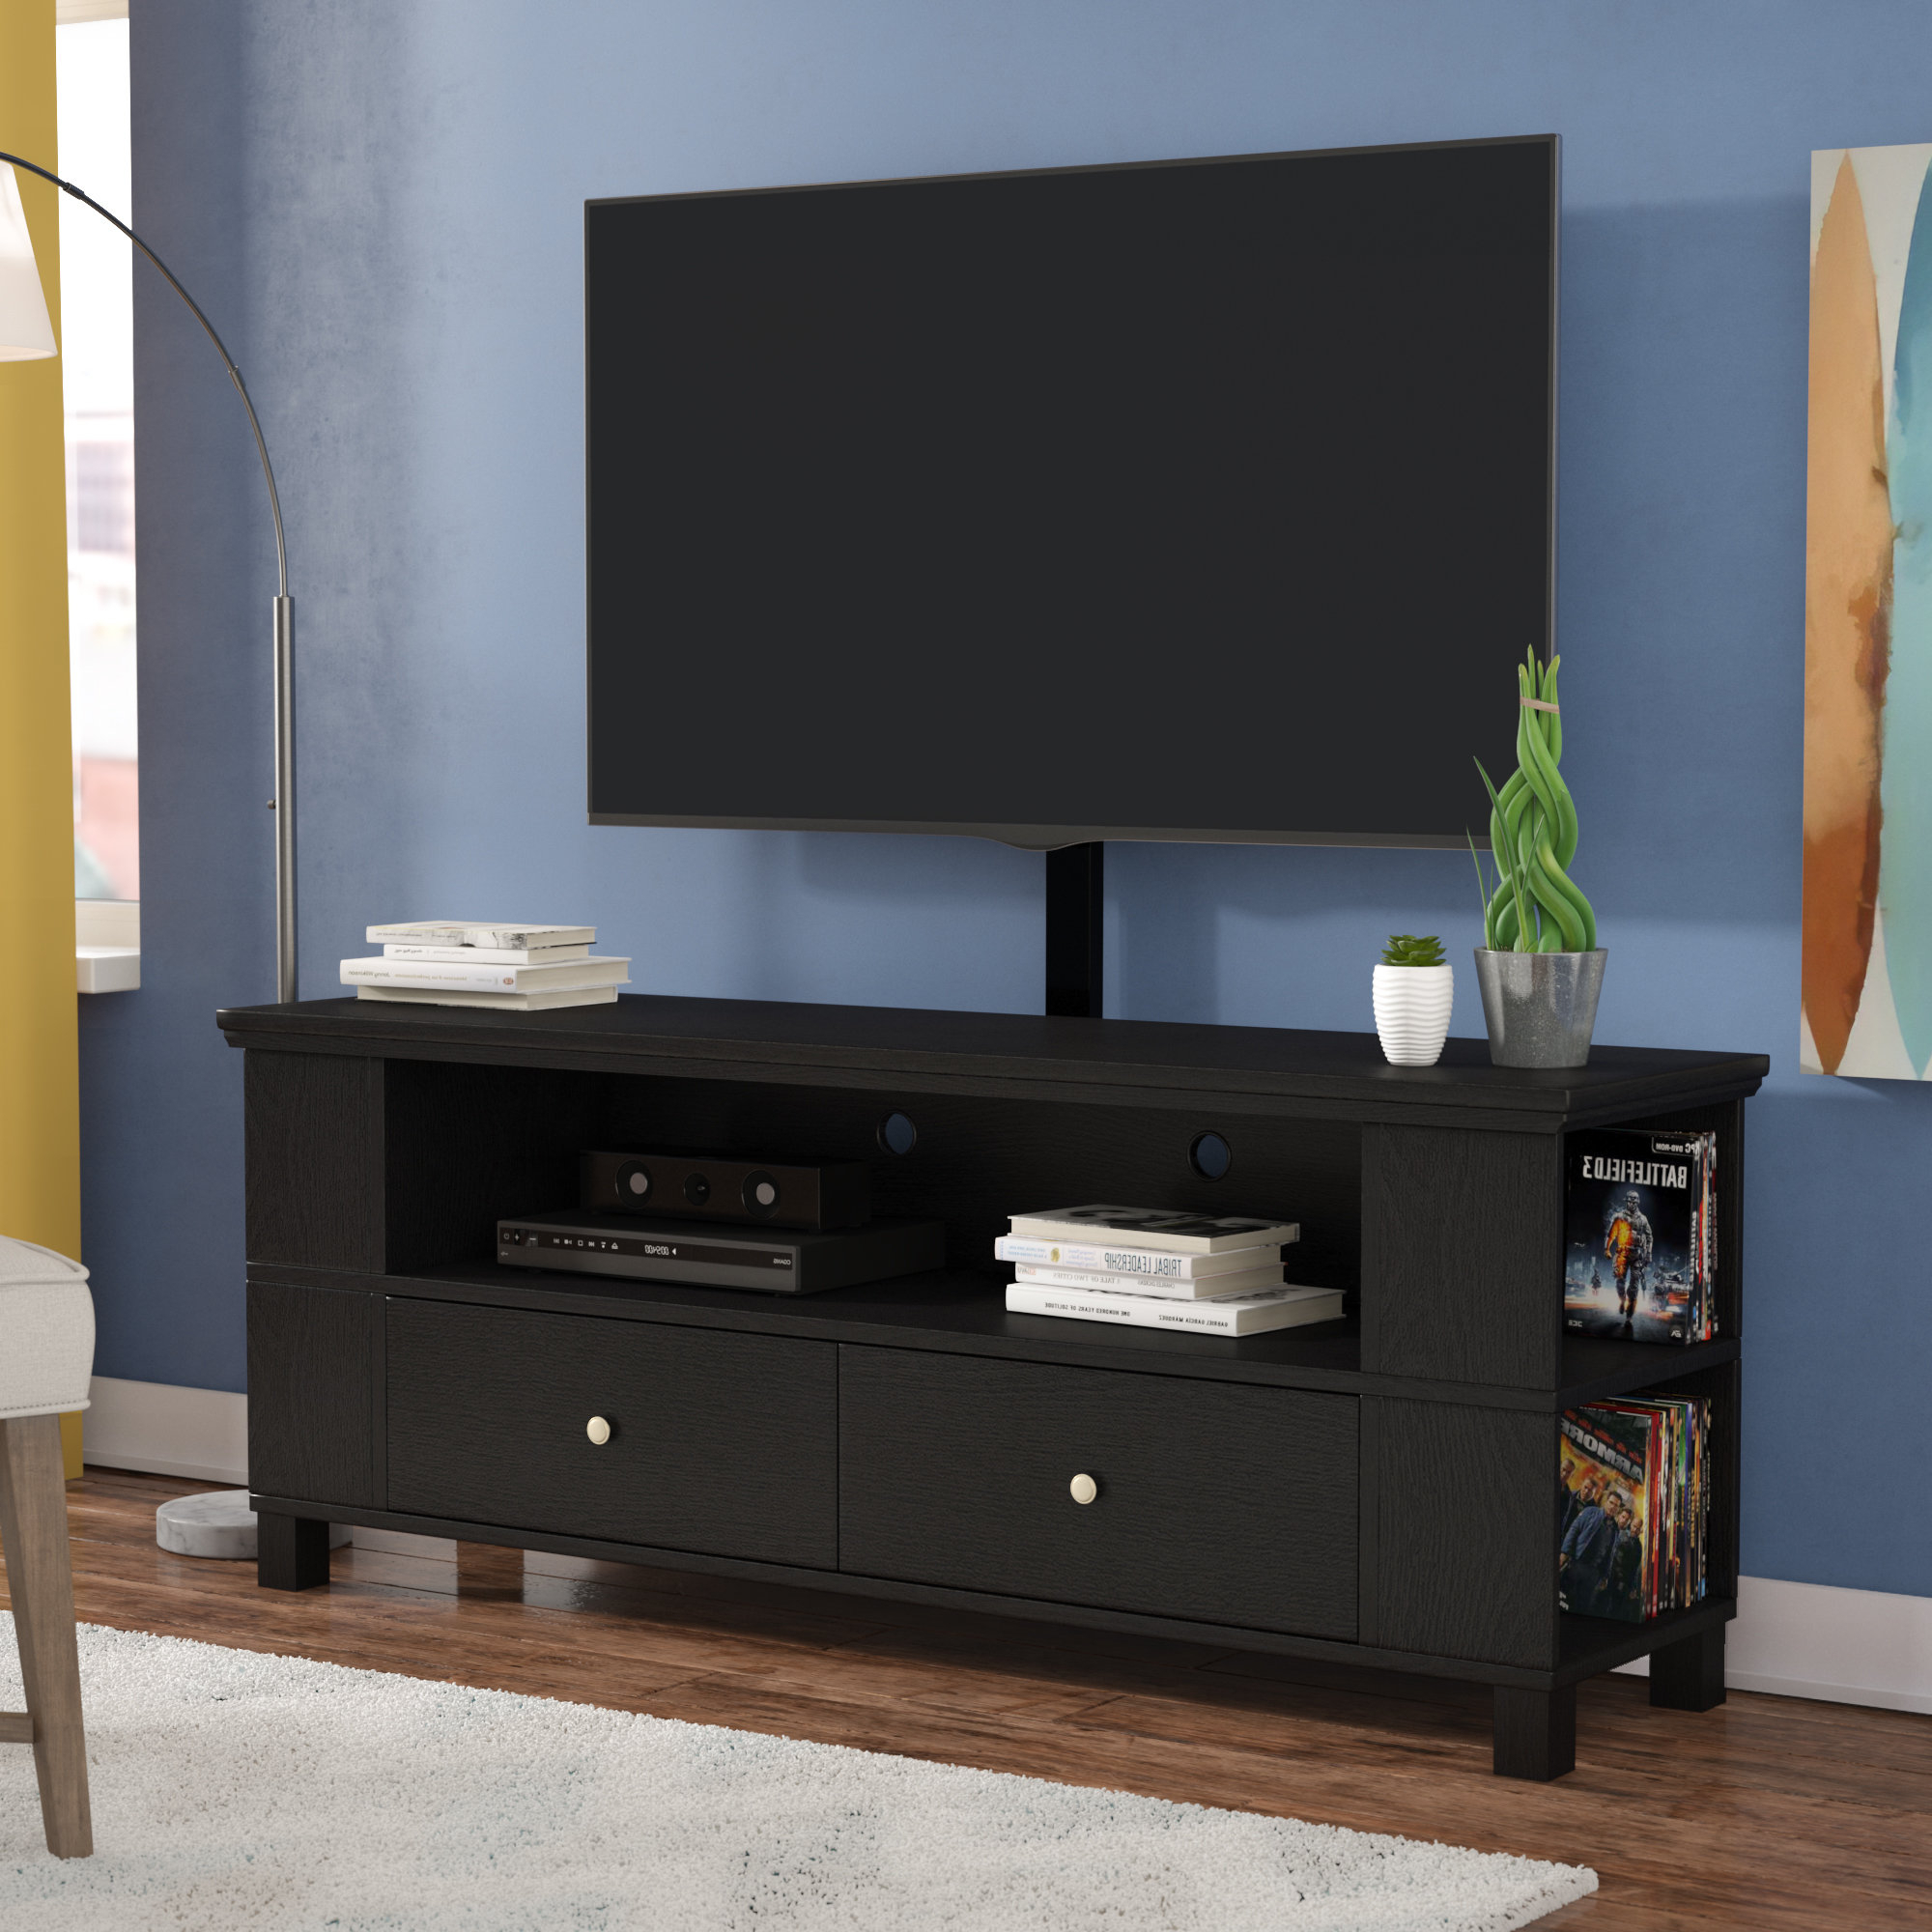 Extra Long Tv Stand (Gallery 4 of 20)